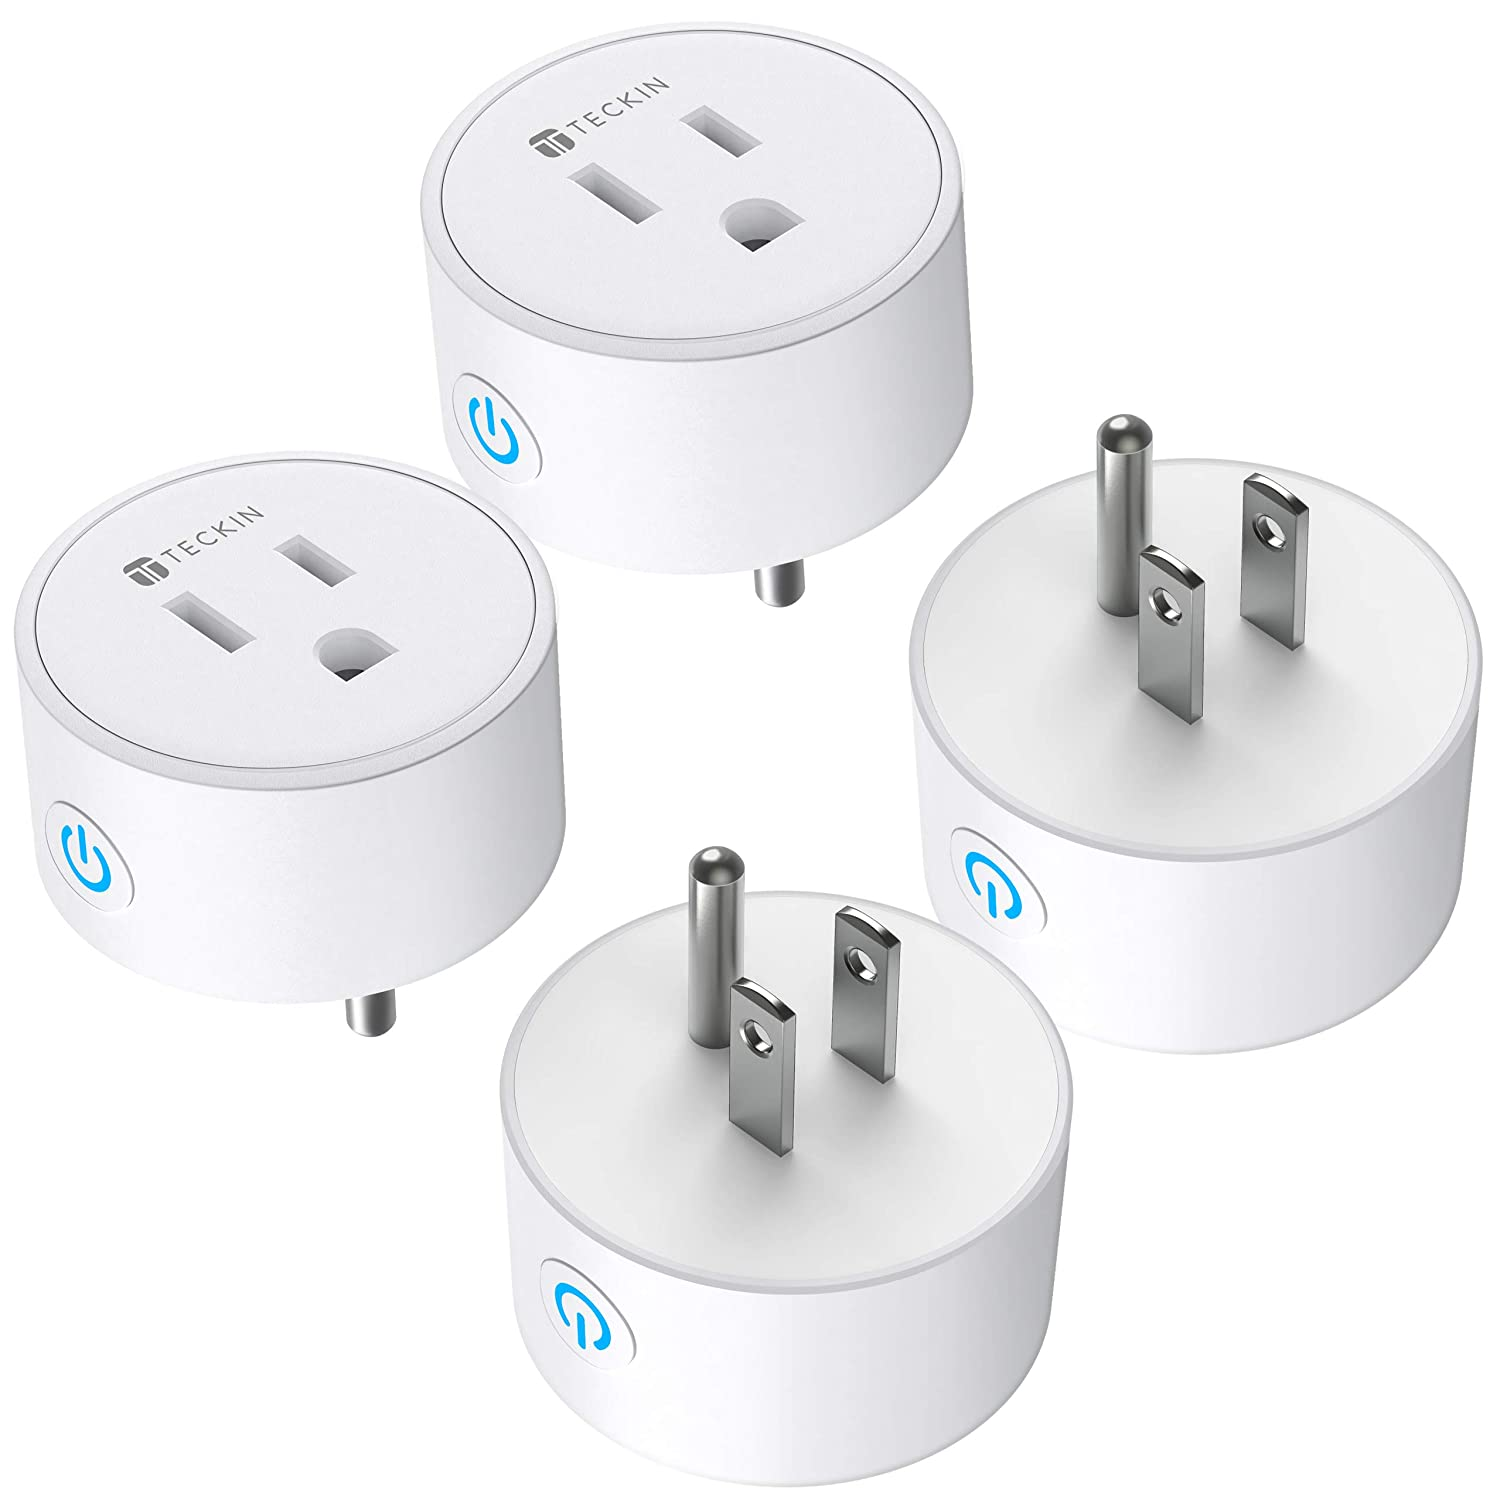 Smart Plug WiFi Outlet Works with Alexa and Google Home TECKIN Remote Control Mini Smart Socket Timer and Schedule, No Hub Required, only 2.4ghz FCC ETL Certified, White